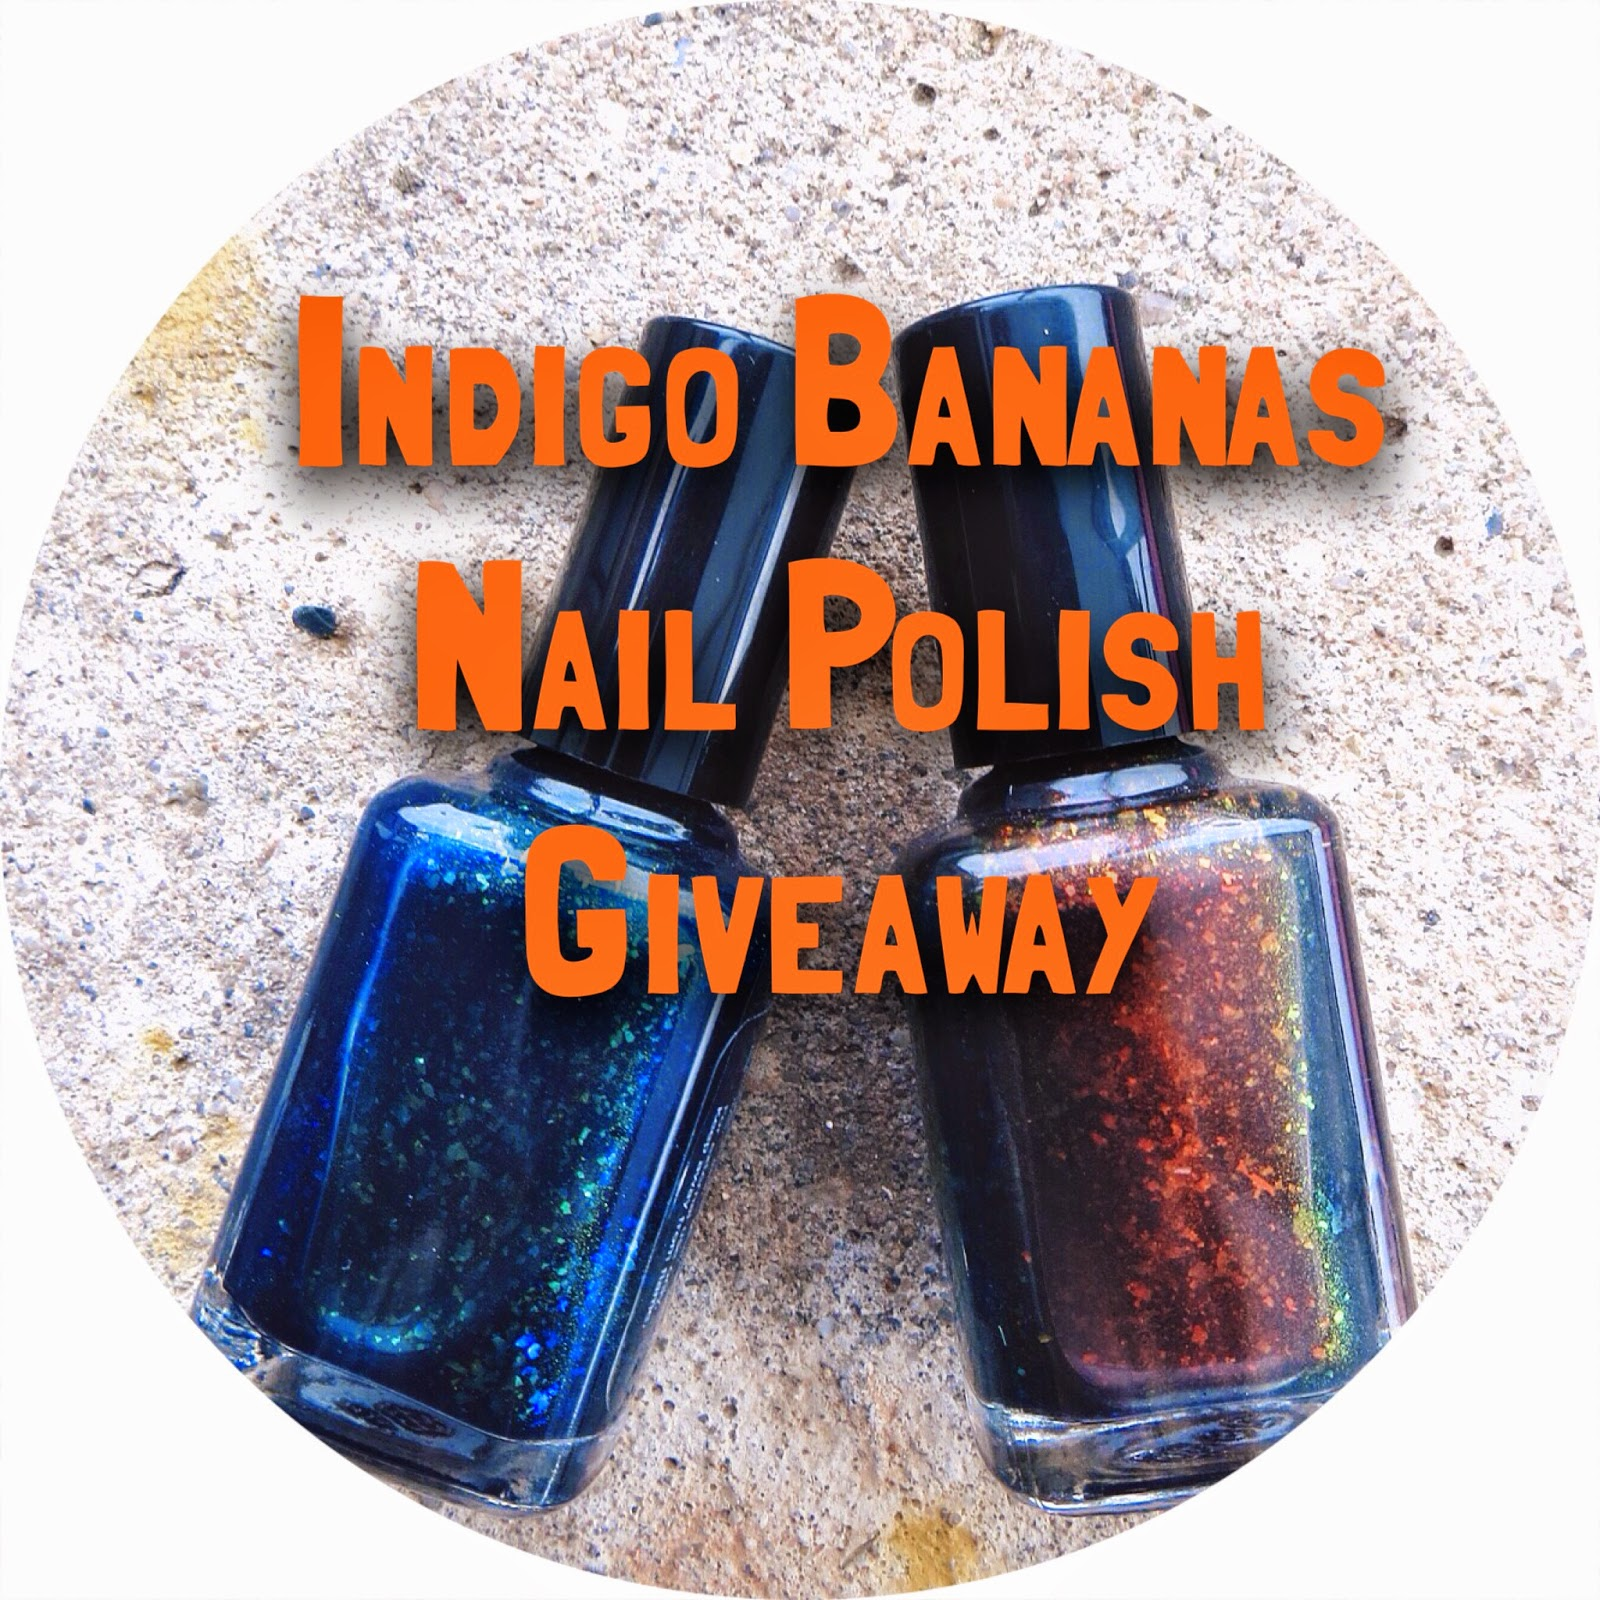 indigo bananas nail polish giveaway, freebie friday, giveaway, sweepstakes, free nail polish, beauty products, flakie nail polish